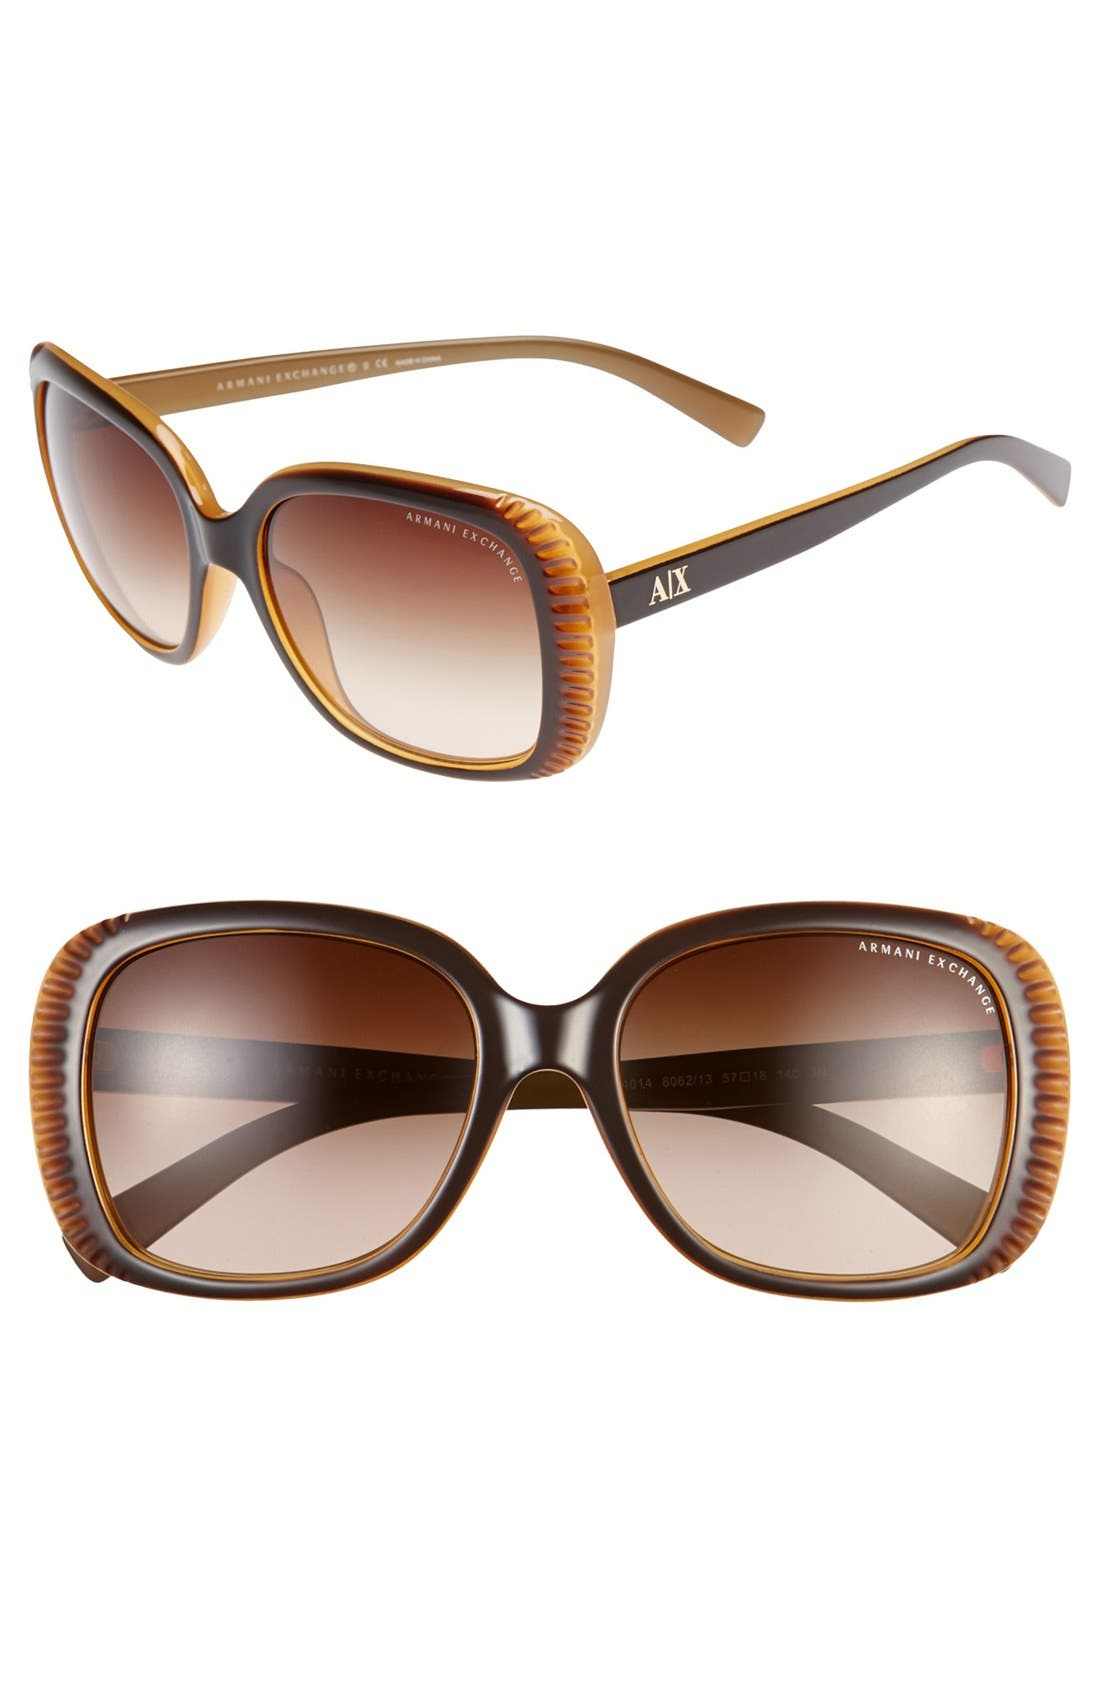 Main Image - AX Armani Exchange 57mm Butterfly Sunglasses